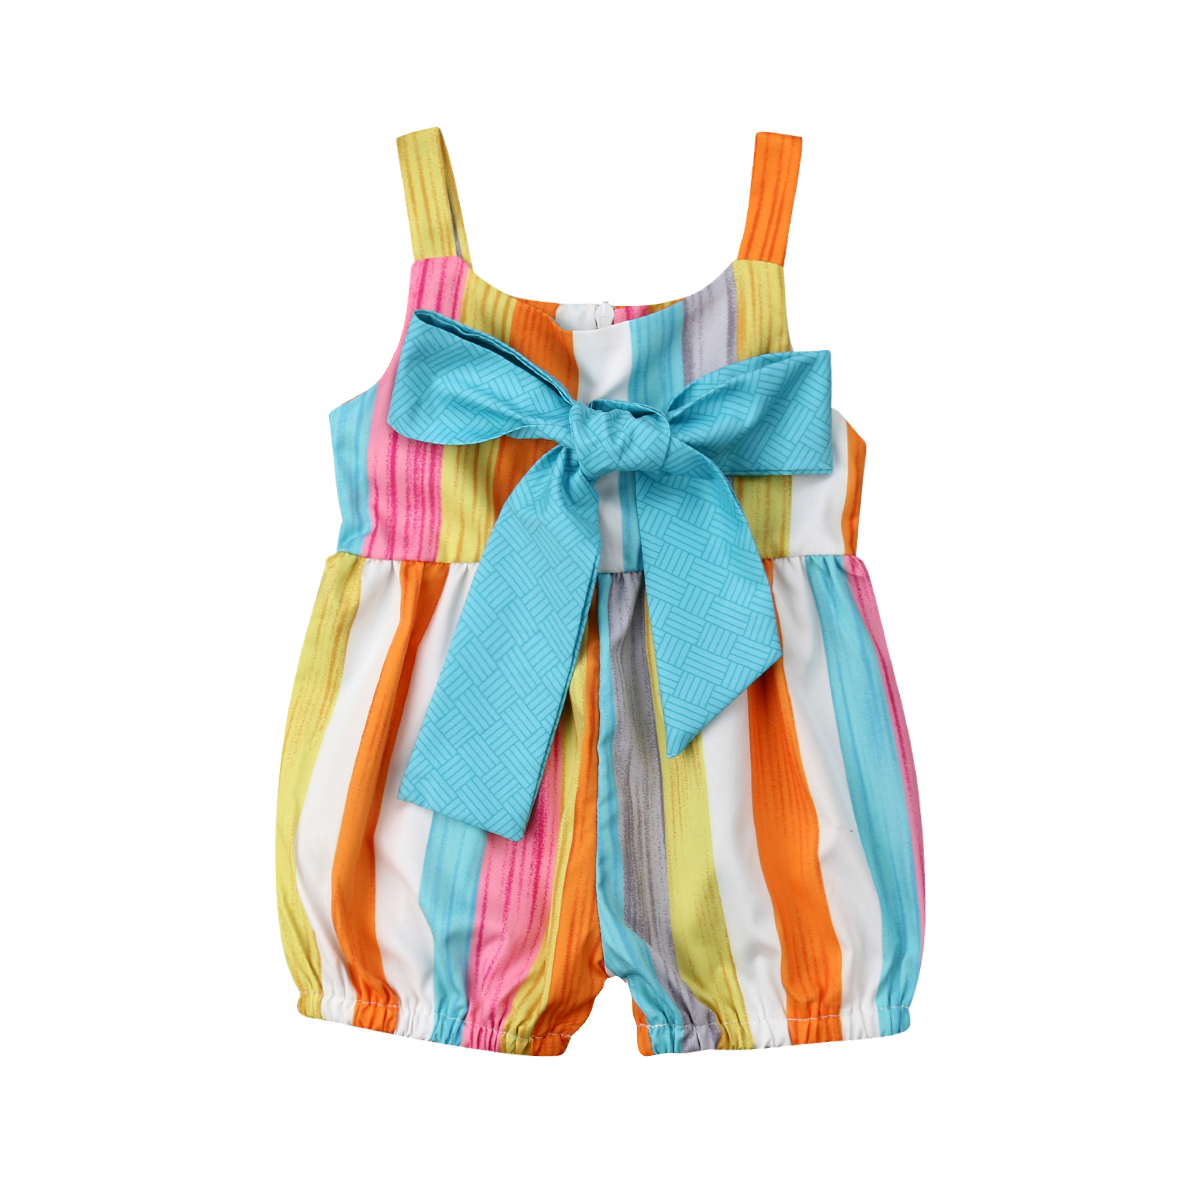 0-24M Summer Newborn Kids Baby Girls Clothing Muti-color Stripe Strap   Romper   Playsuit Sleeveless Casual Outfits